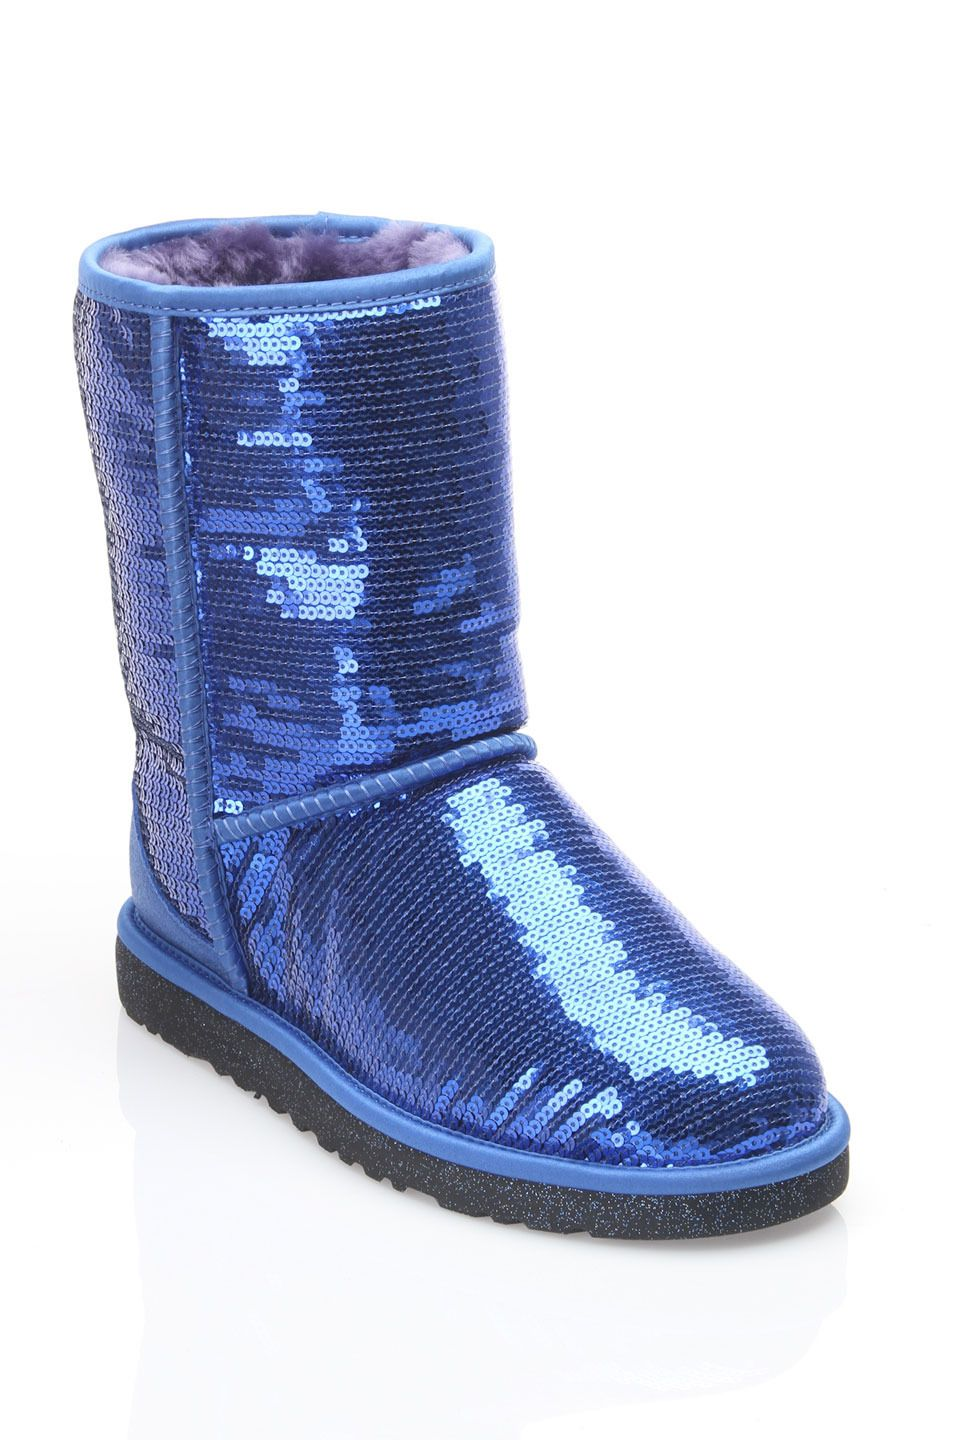 Ugg Ladies' Classic Short Sparkles Boot in Blue - Beyond the Rack